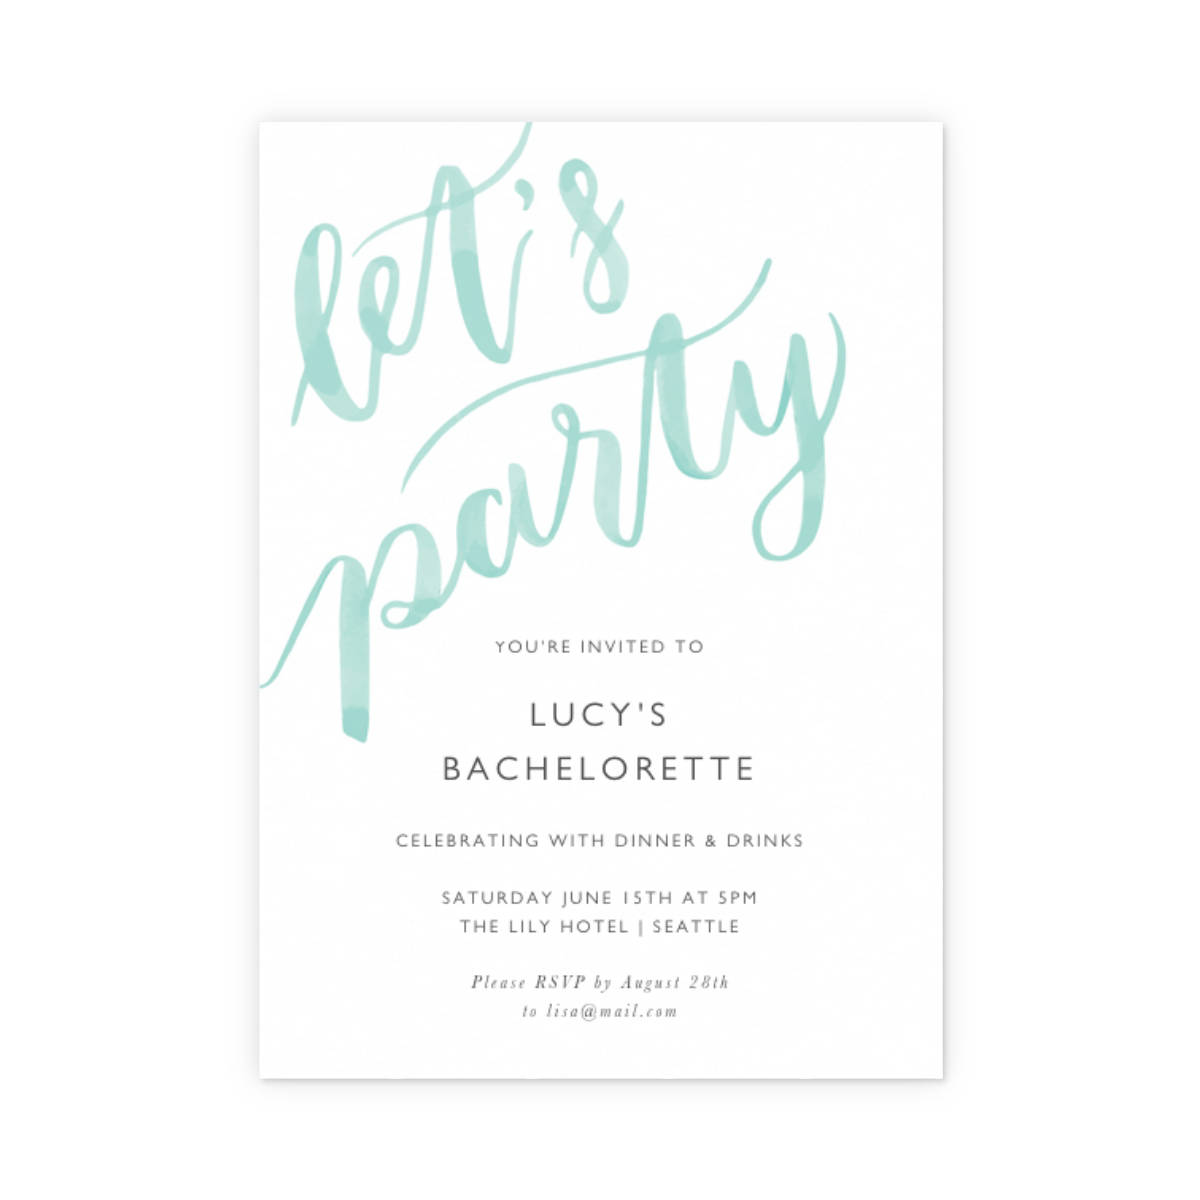 Https%3a%2f%2fwww.papier.com%2fproduct image%2f83820%2f4%2flet s party brush lettering 20260 front 1565550510.png?ixlib=rb 1.1